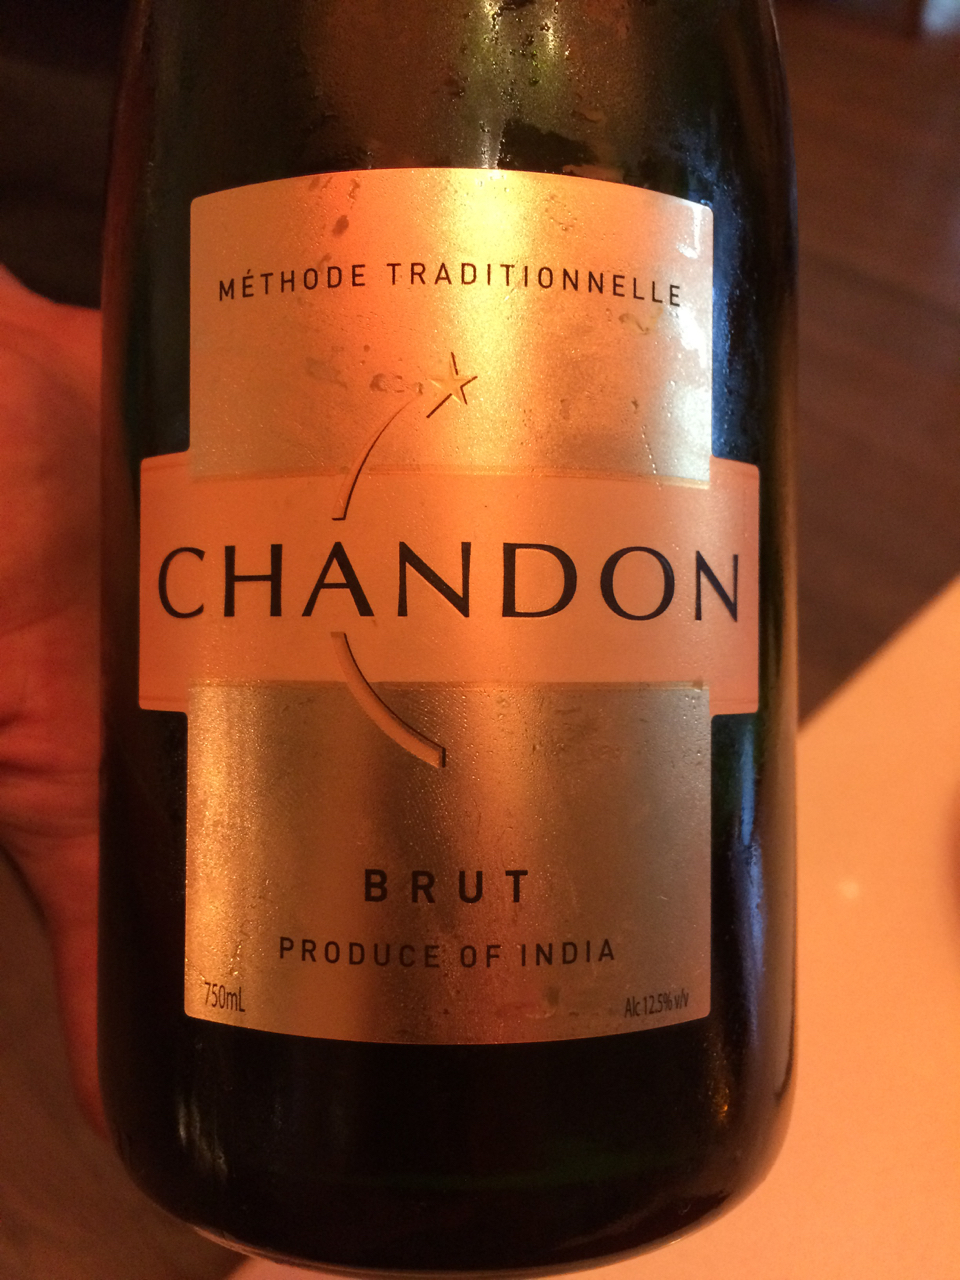 Apparently, Chandon is all in on this pairing, too.